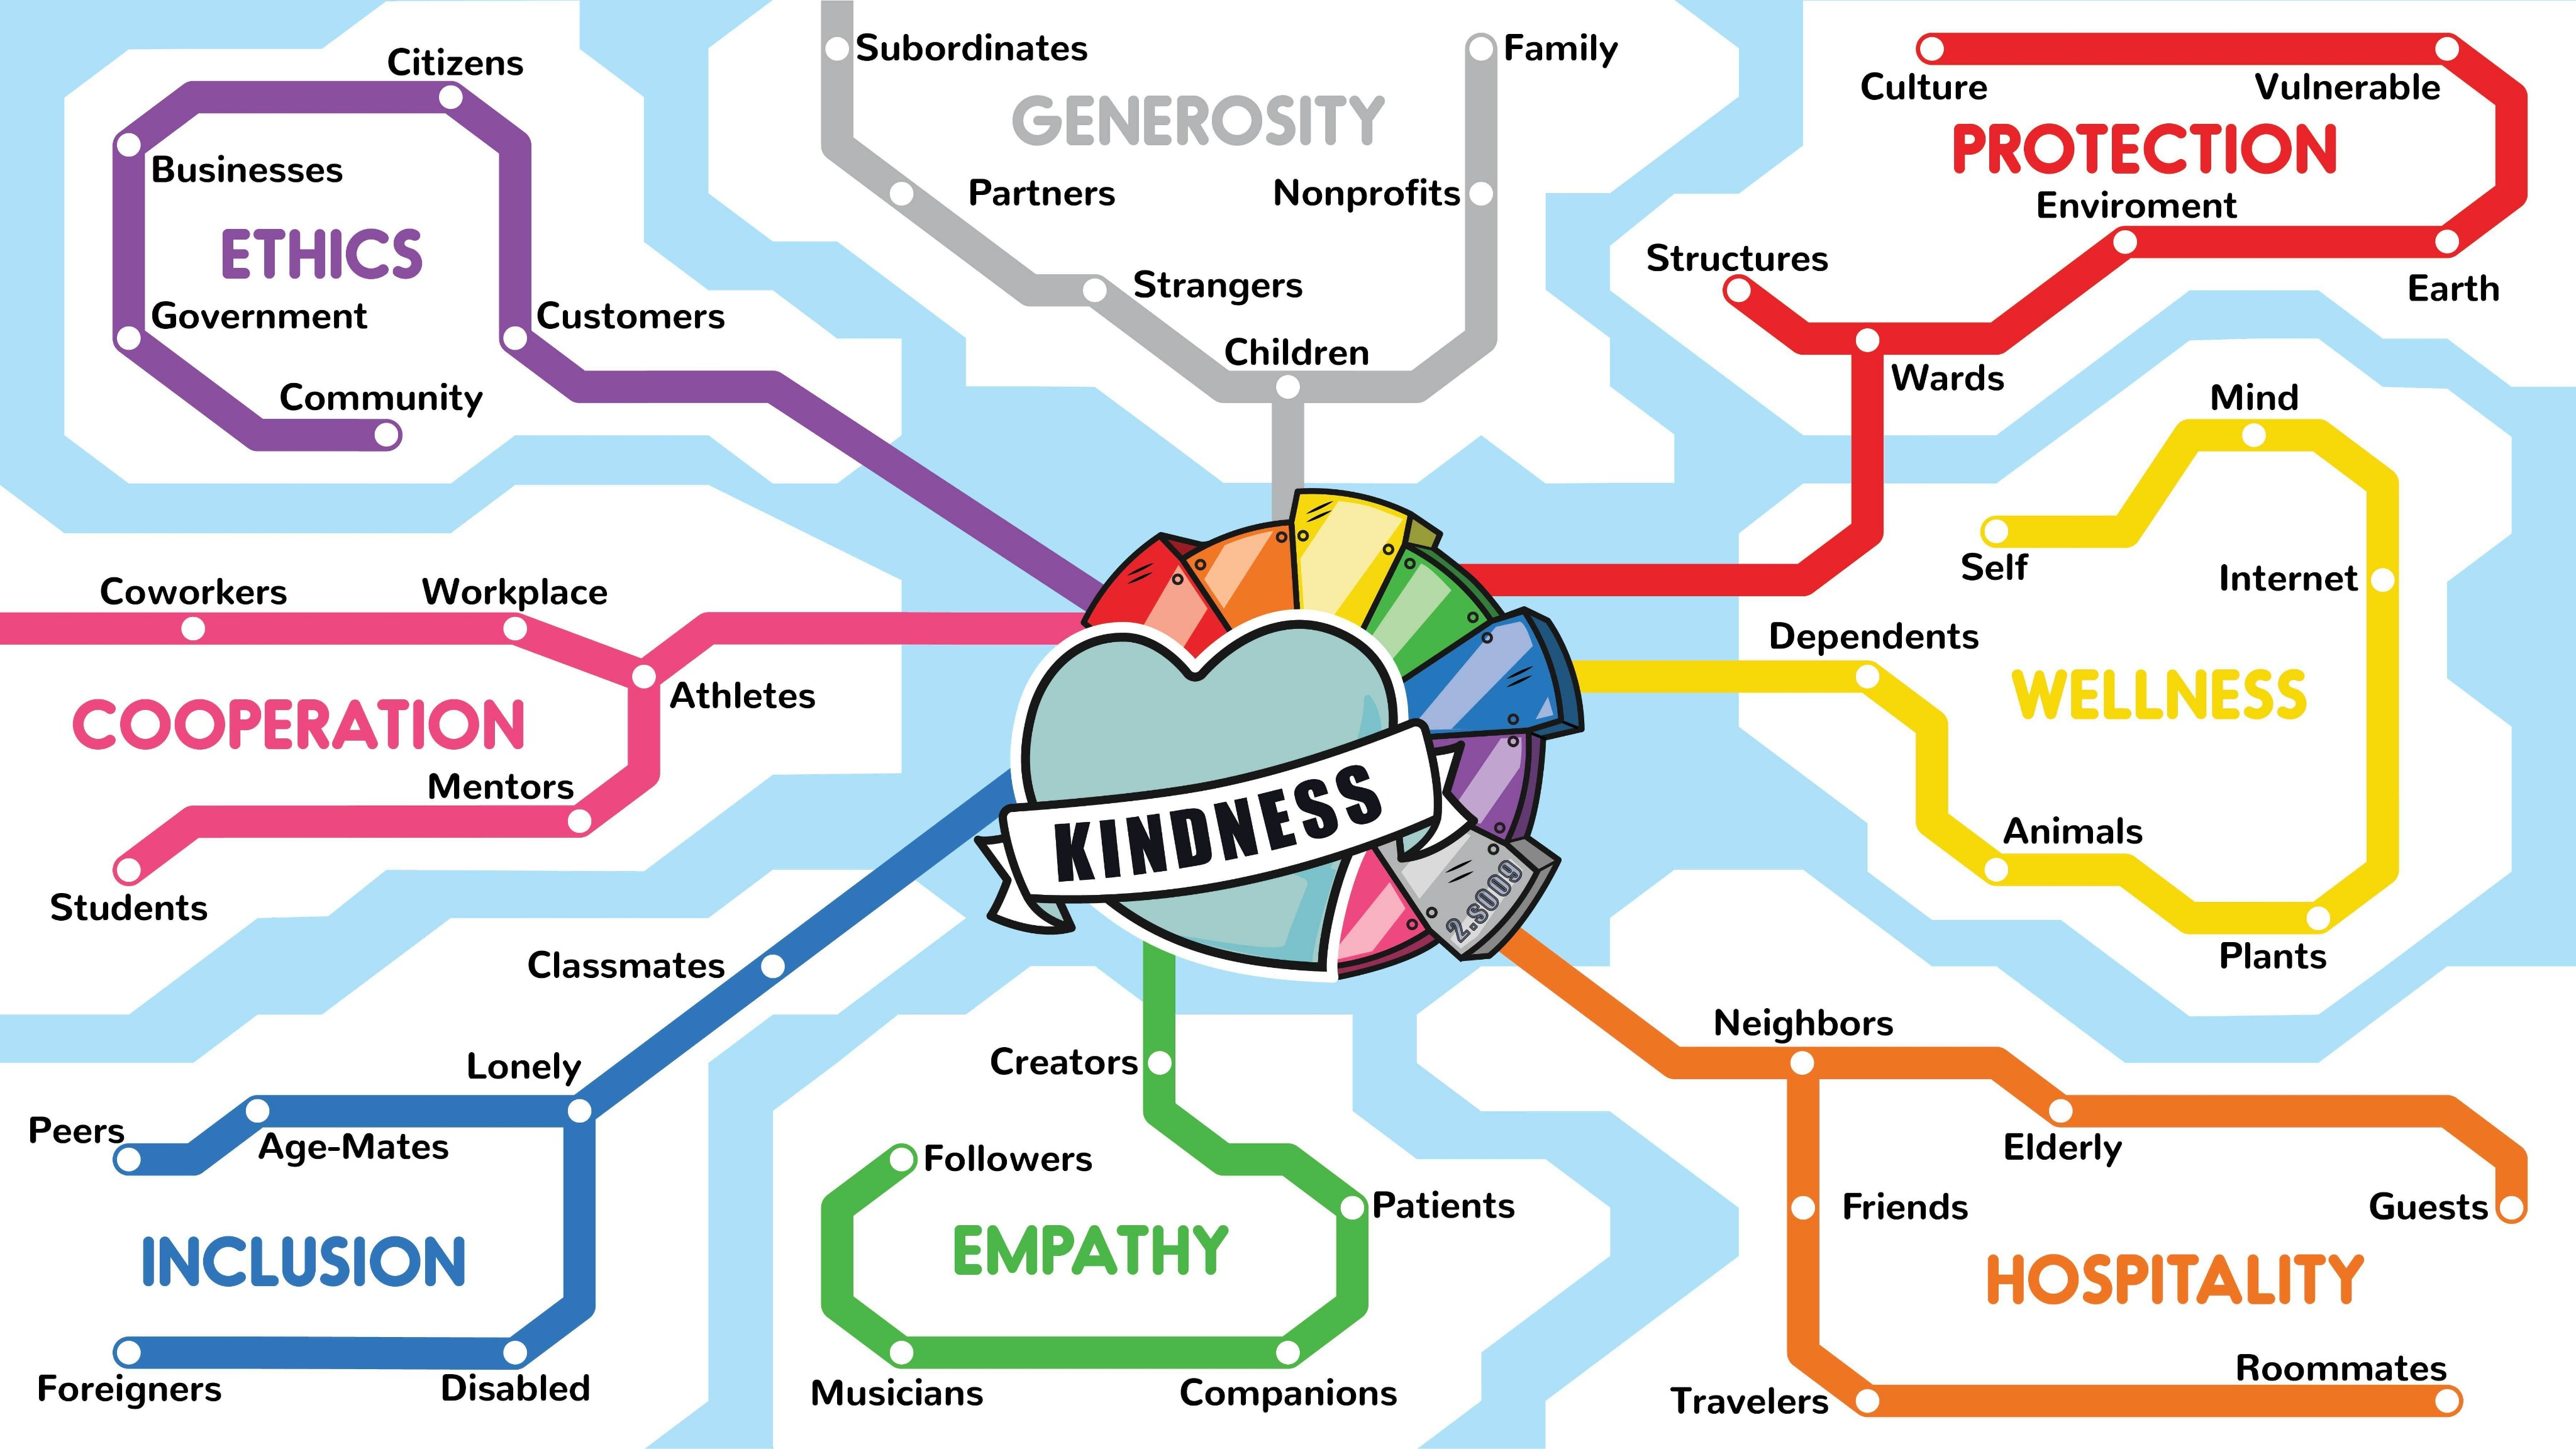 Kindness Association Map